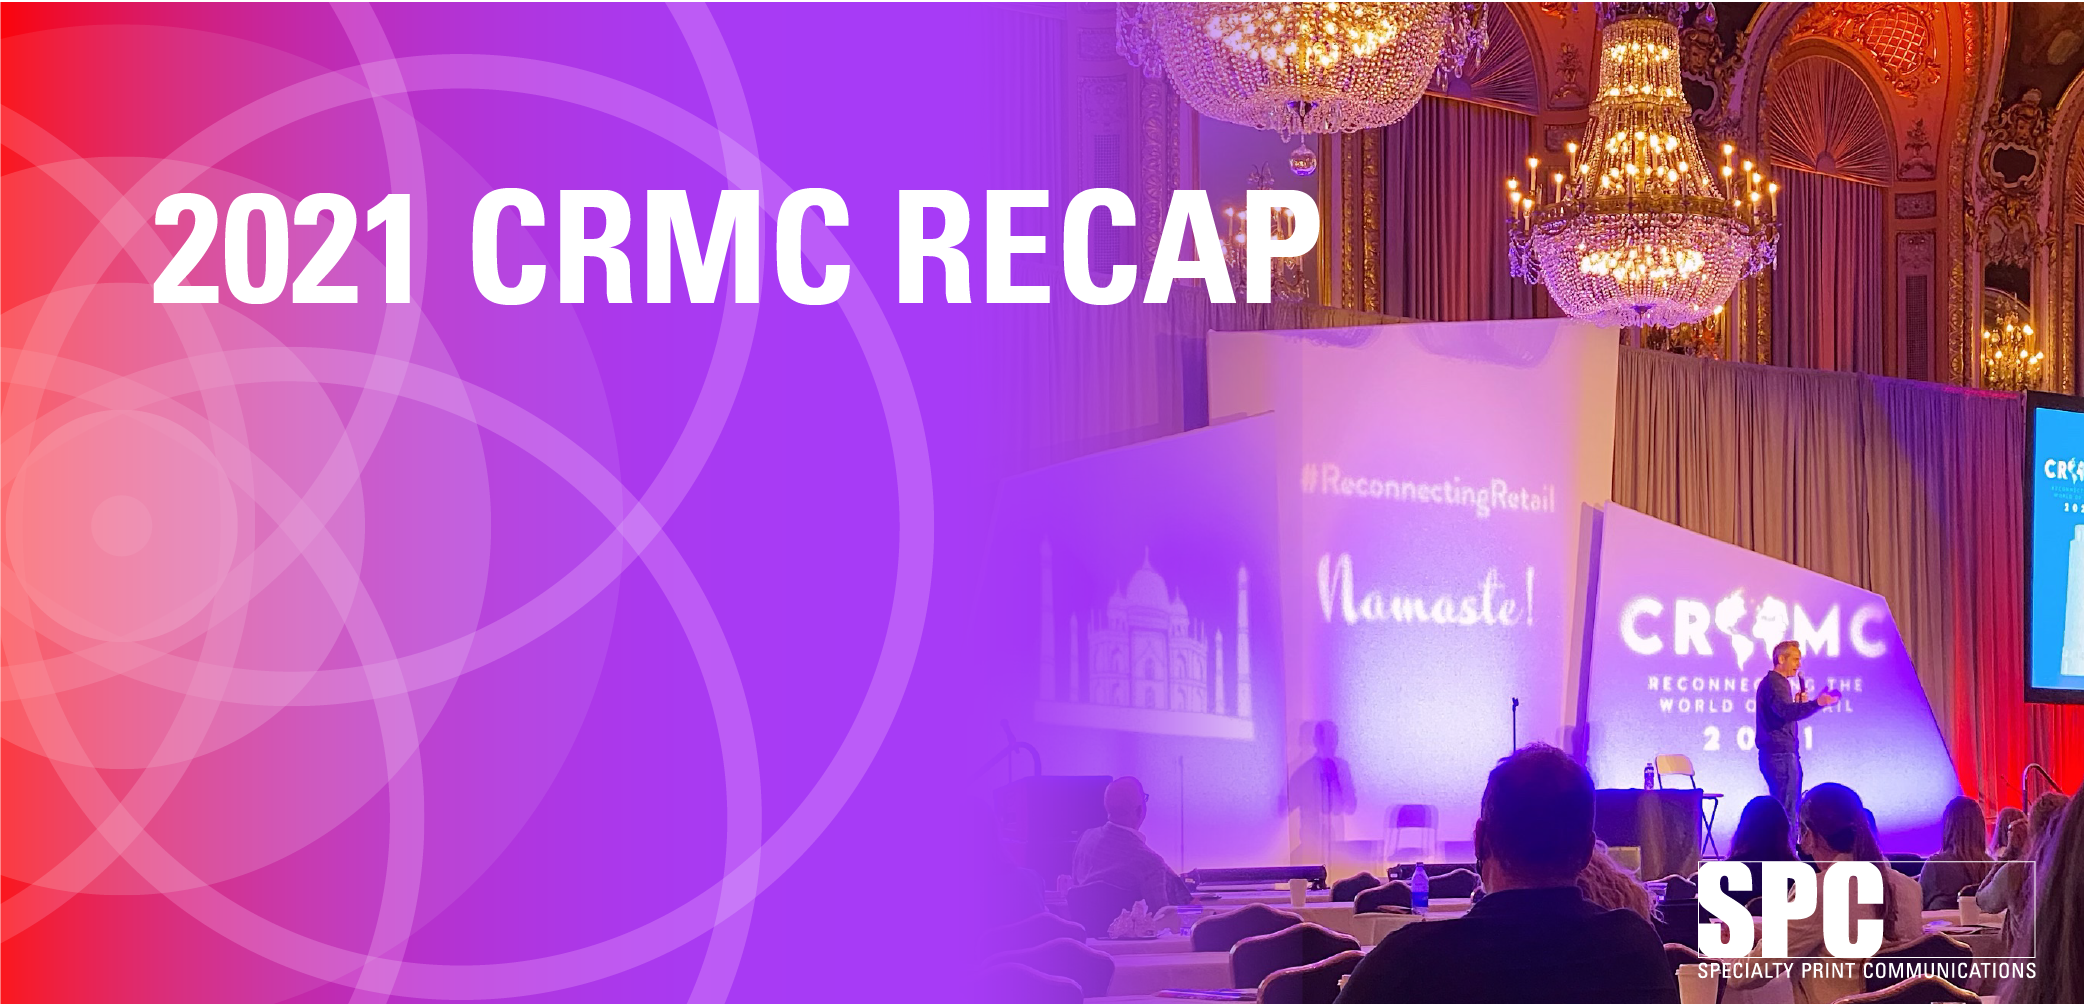 Retailers Get More Personal at 2021 CRMC Event